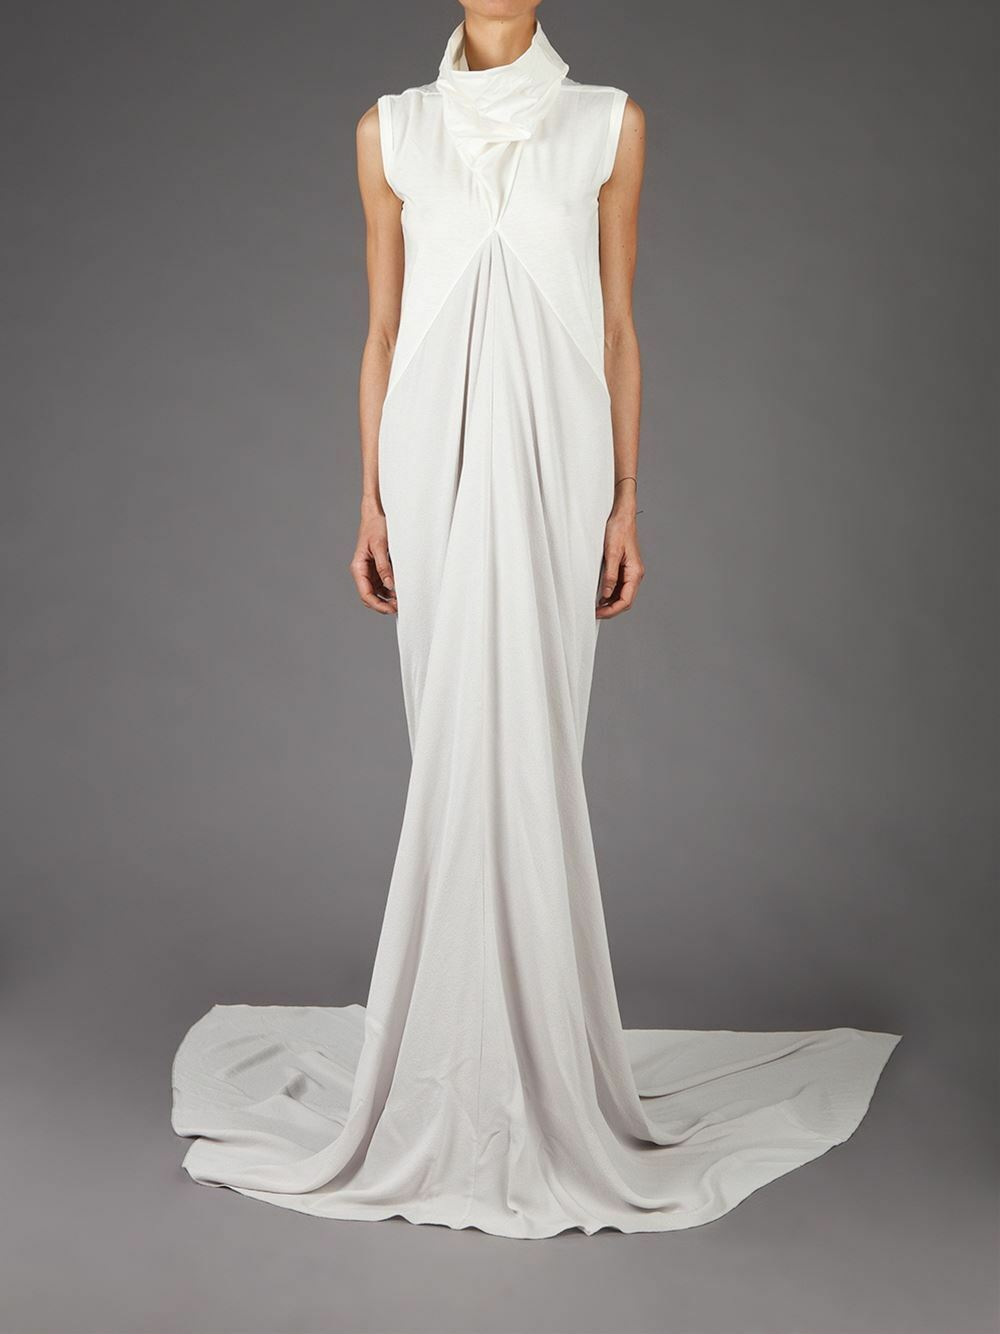 RICK OWENS $2,150 full-length maxi mermaid train wedding gown Naska dress 40 NEW